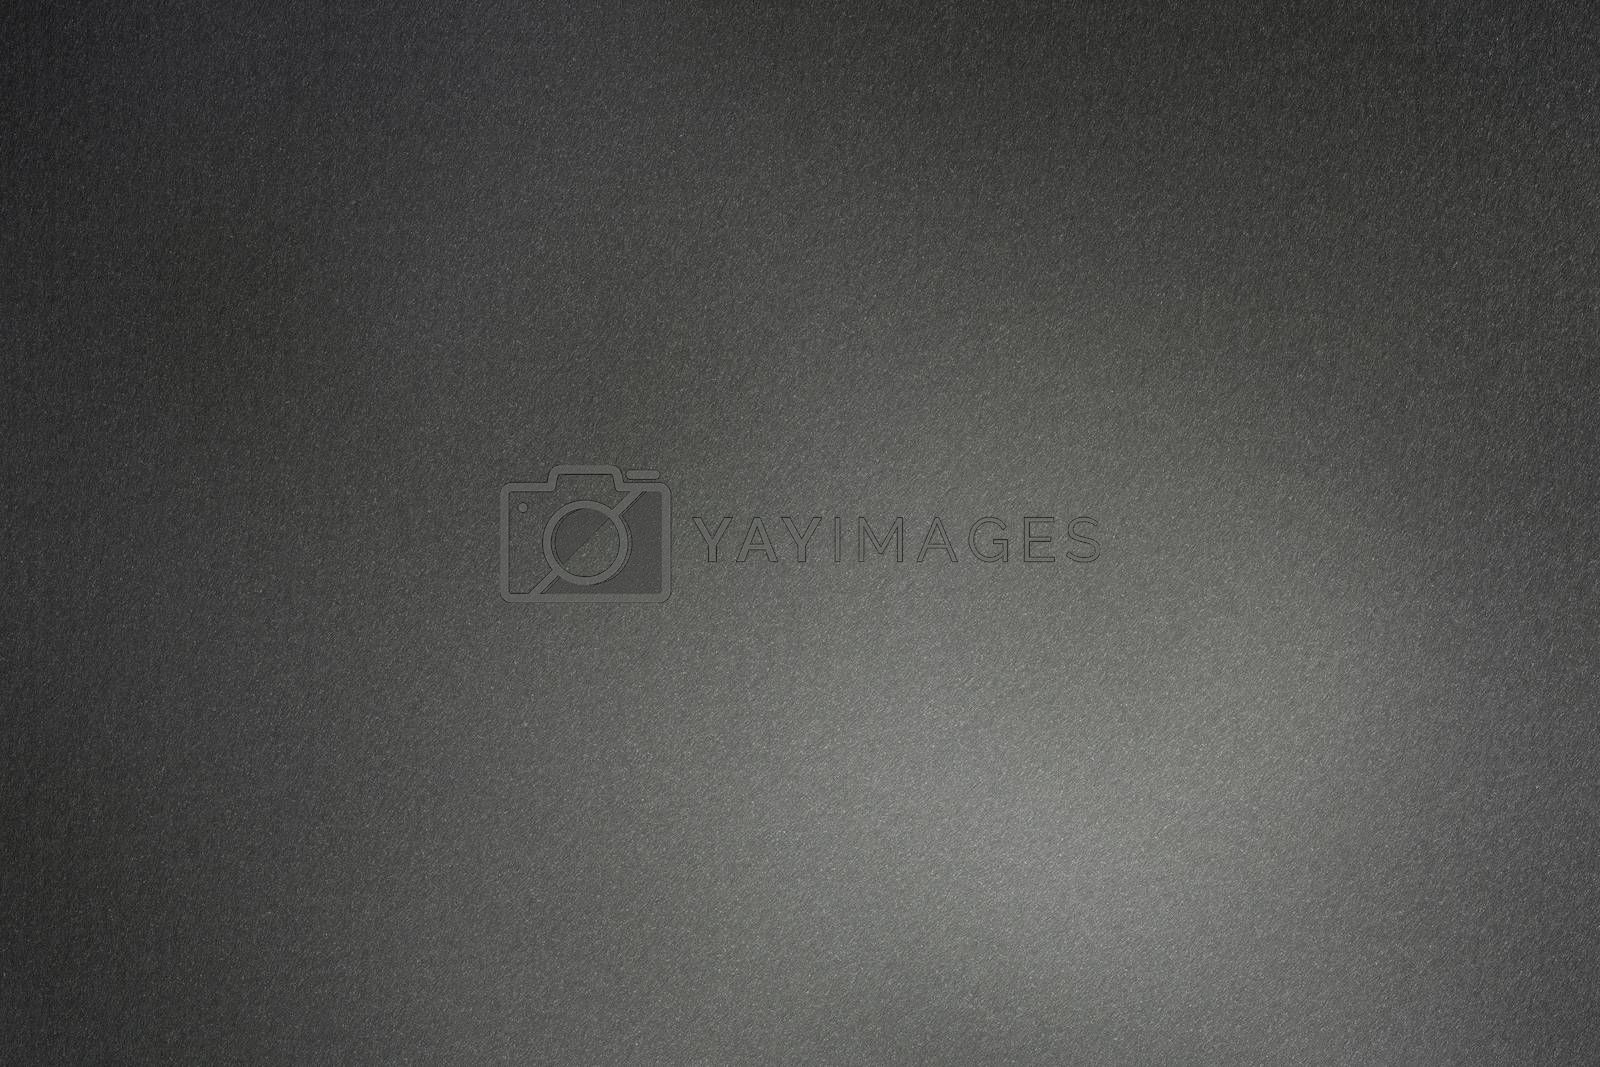 Brushed black metal board surface, abstract texture background by mouu007